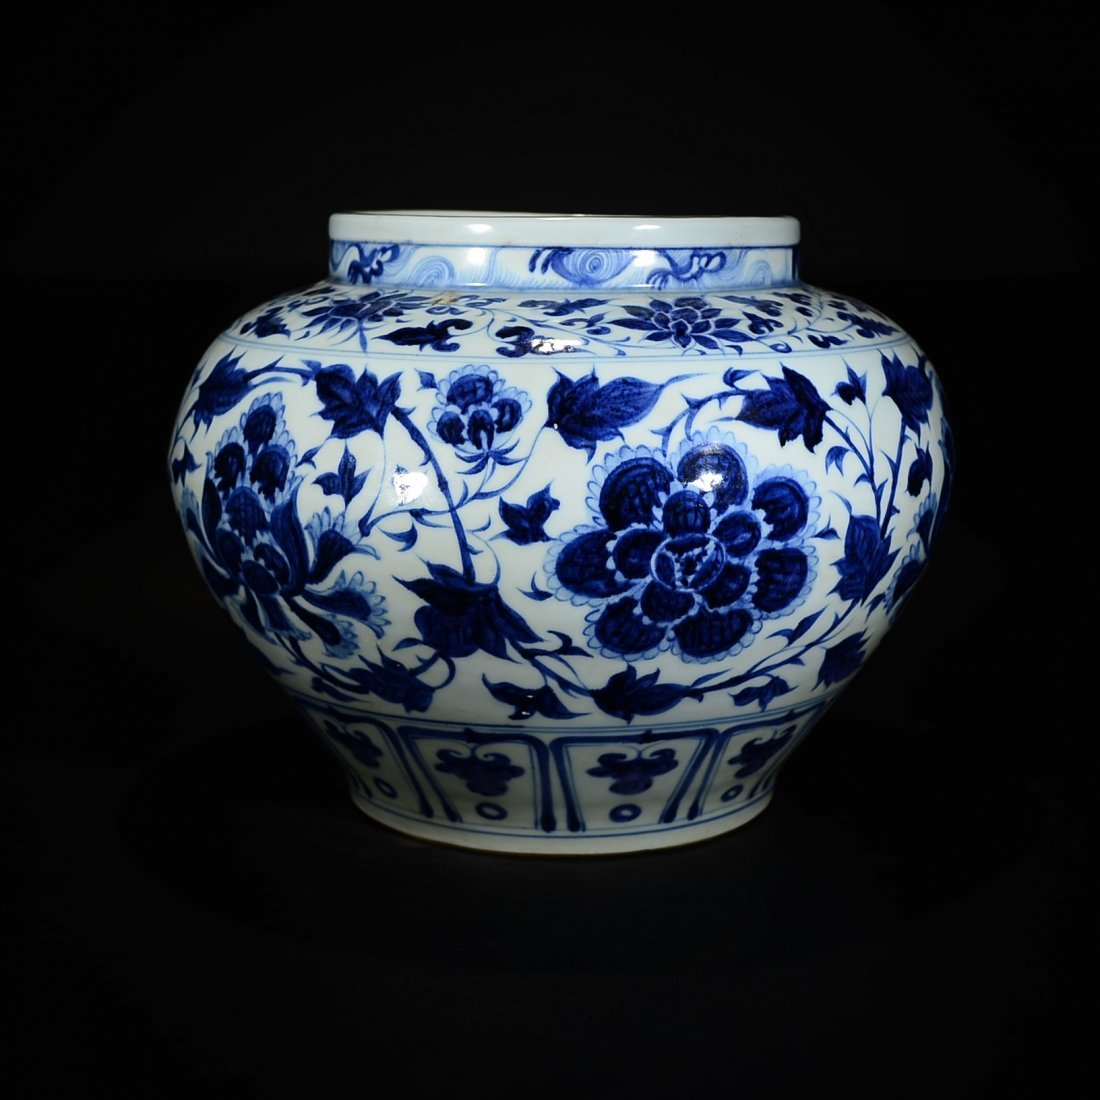 YUAN STYLE, A BLUE AND WHITE FLORAL JAR